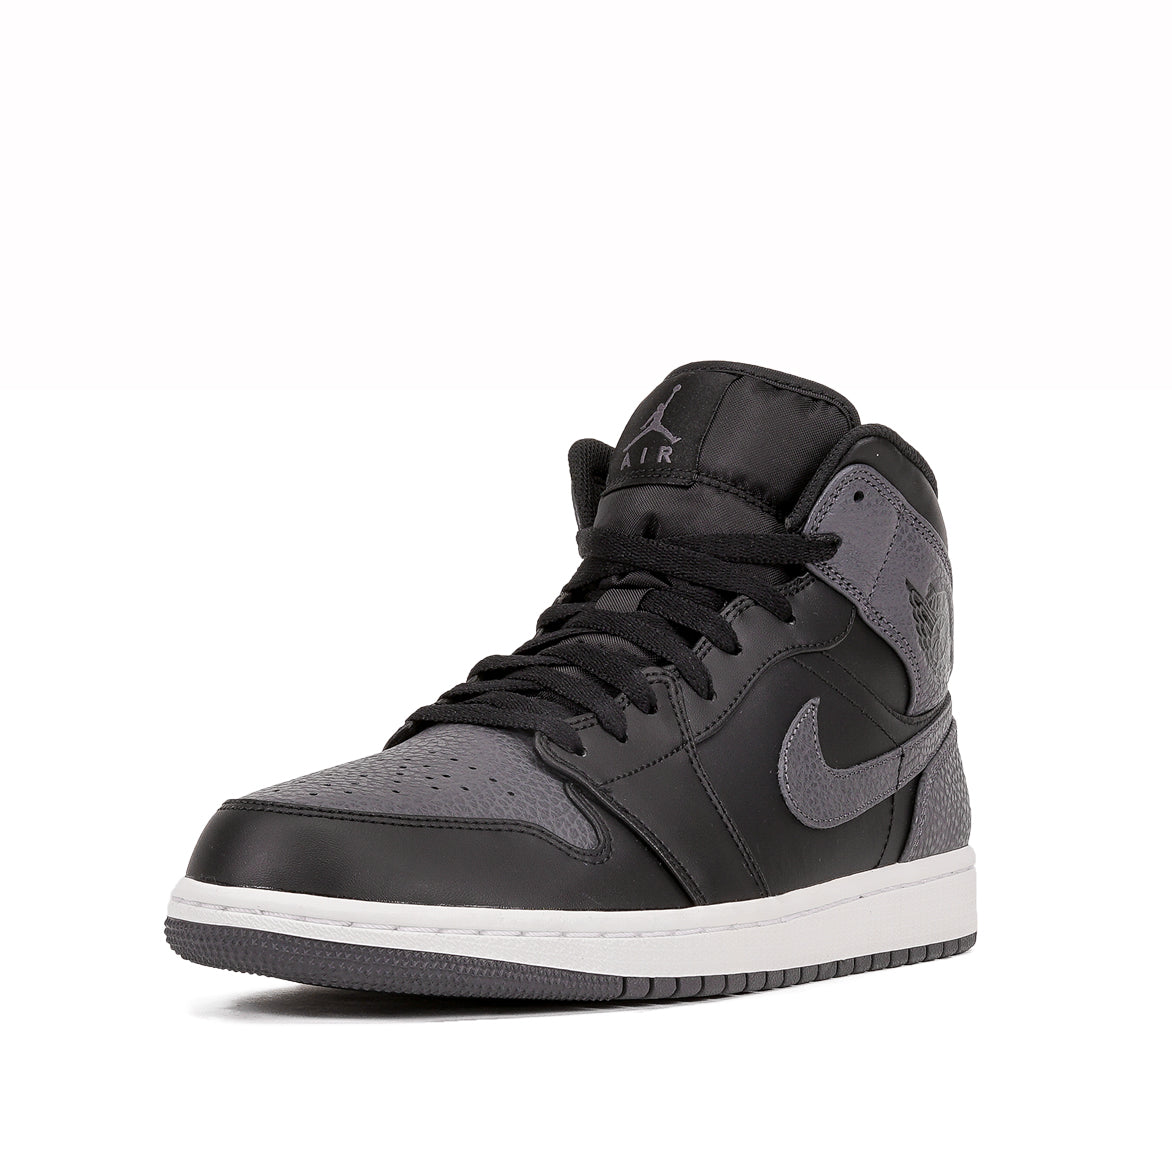 AIR JORDAN 1 MID - BLACK / DARK GREY